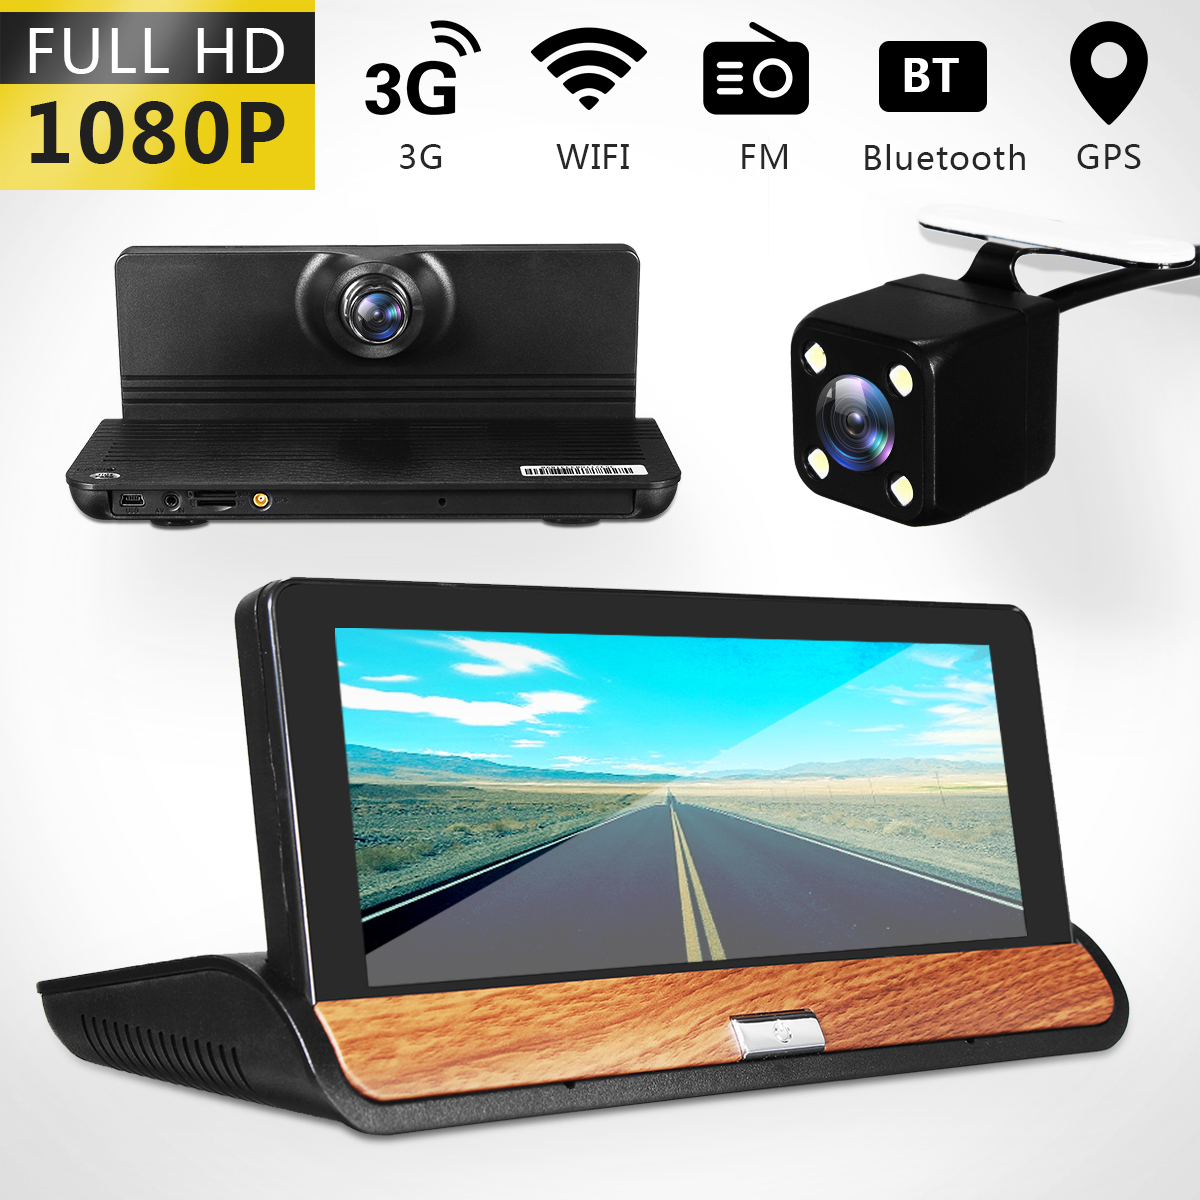 7inch Wifi Bluetooth Car DVR Rear View Mirror Monit Dual Lens HD 1080P Car Dashboard DVR Dash Camera Video Recorder G-Sensor GPS wifi dual lens 5 hd 1080p car dvr video recorder g sensor rearview mirror dash camera auto registrar rear view dvrs dash cam